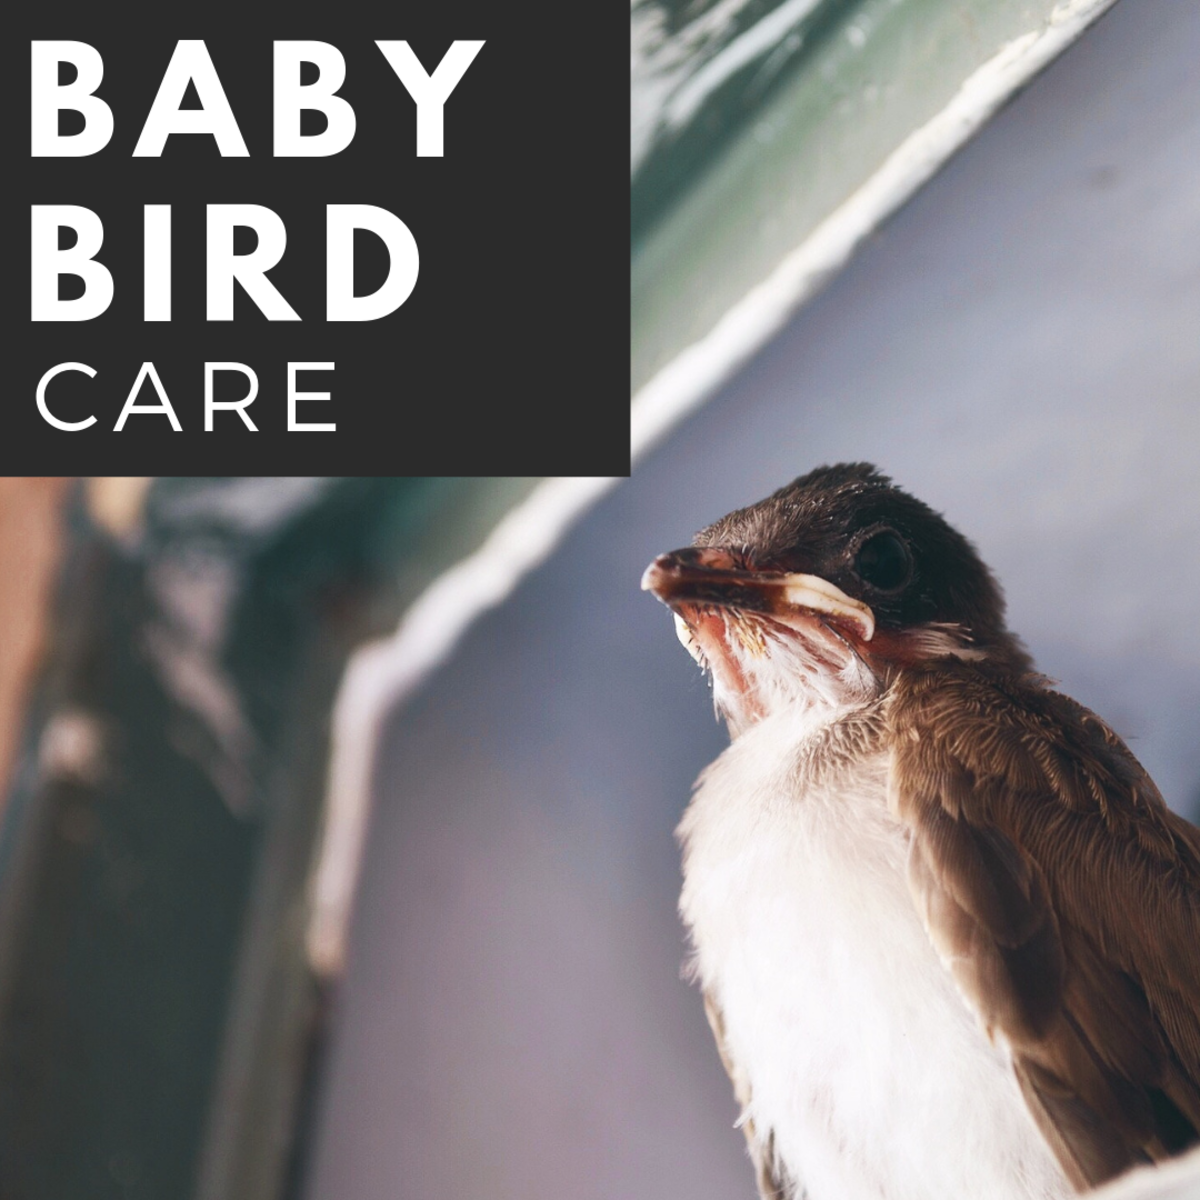 What to Do If You Find a Baby Bird—Helping Wildlife